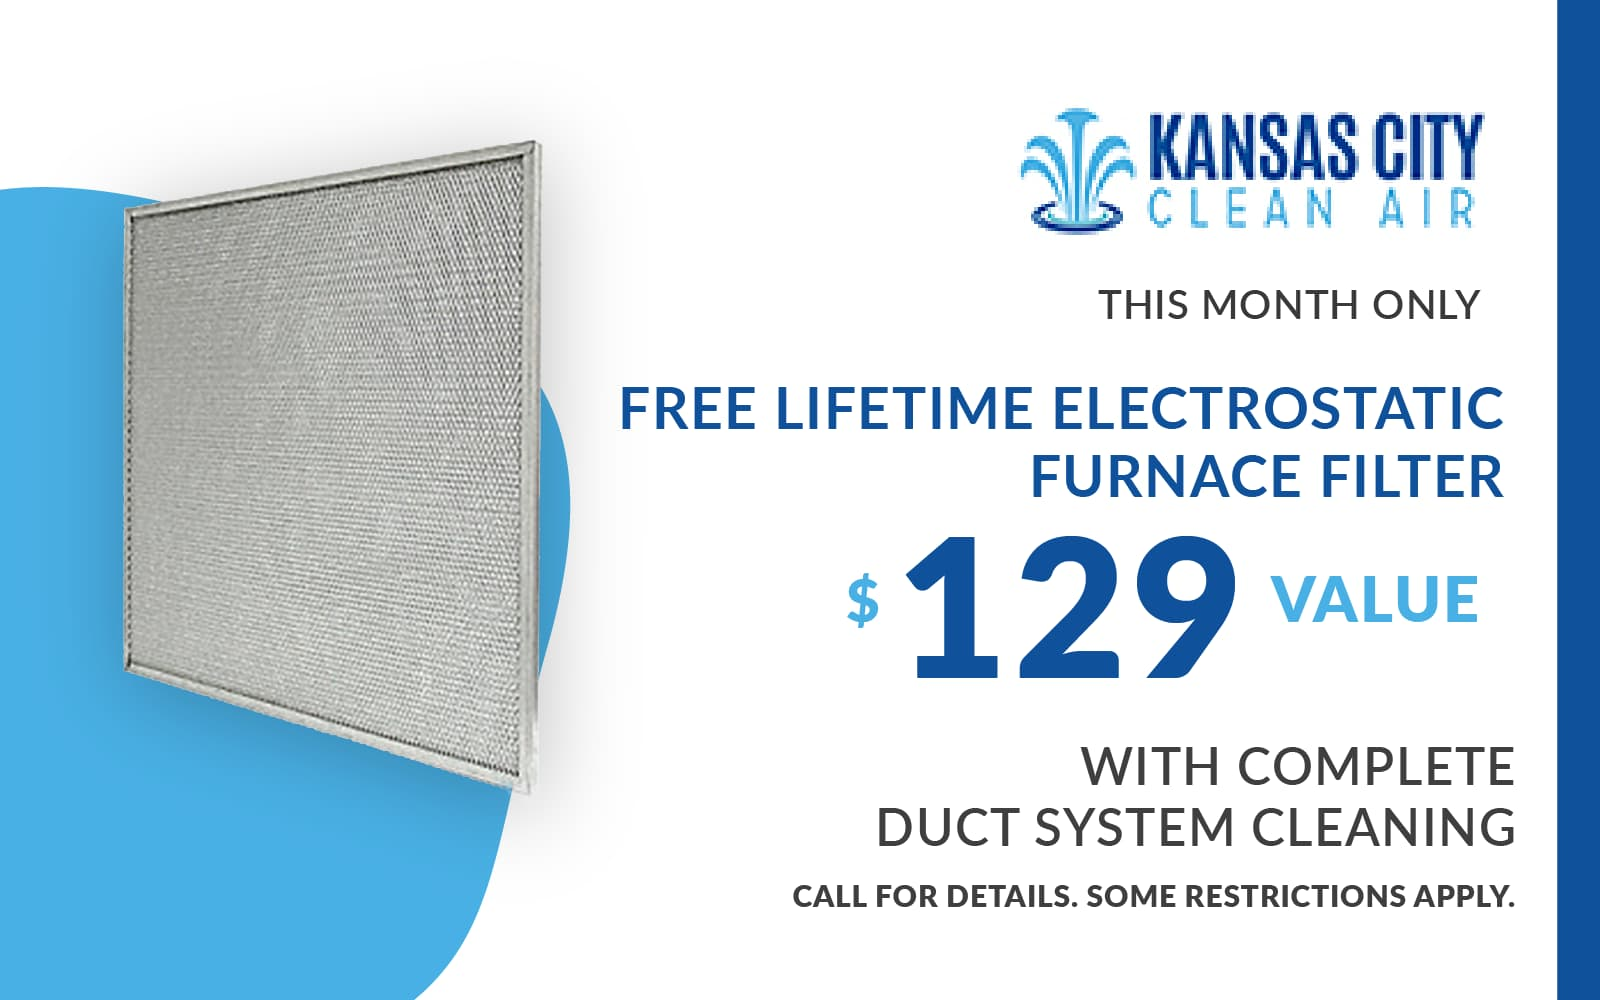 Furnace Filter Coupon with Duct Cleaning